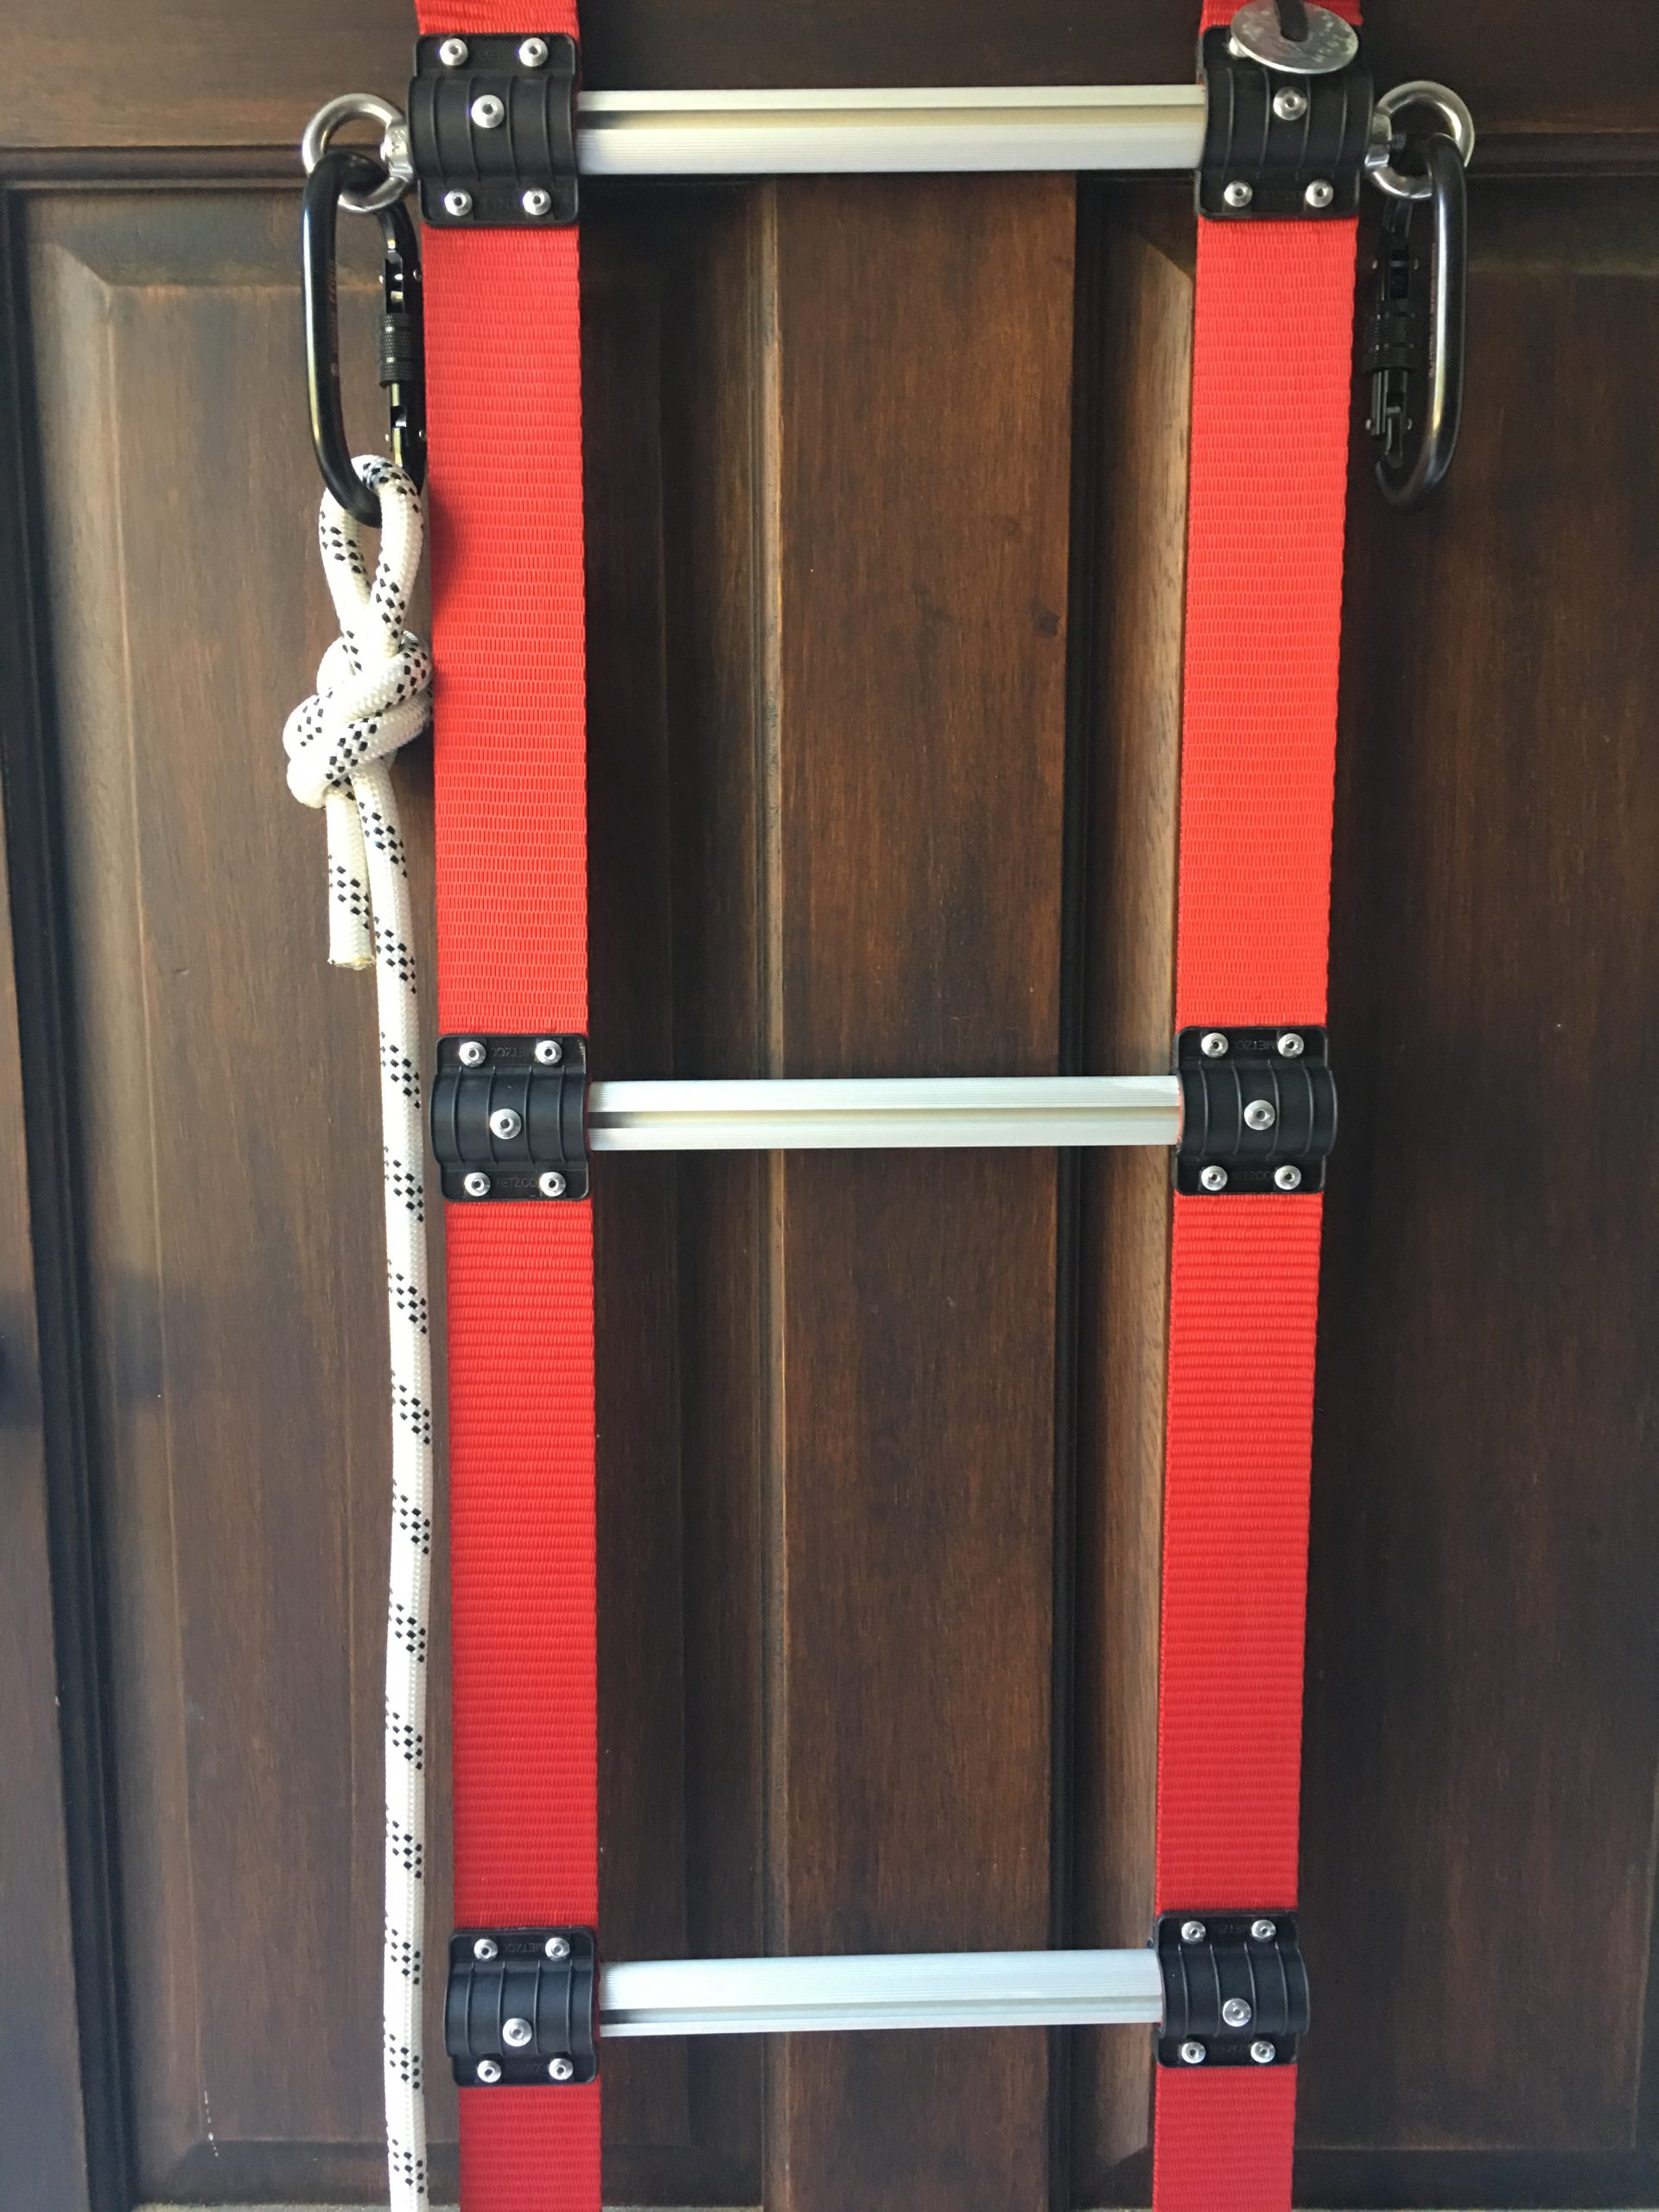 Fire Retardant Rope Ladder with Carabiners and Rope